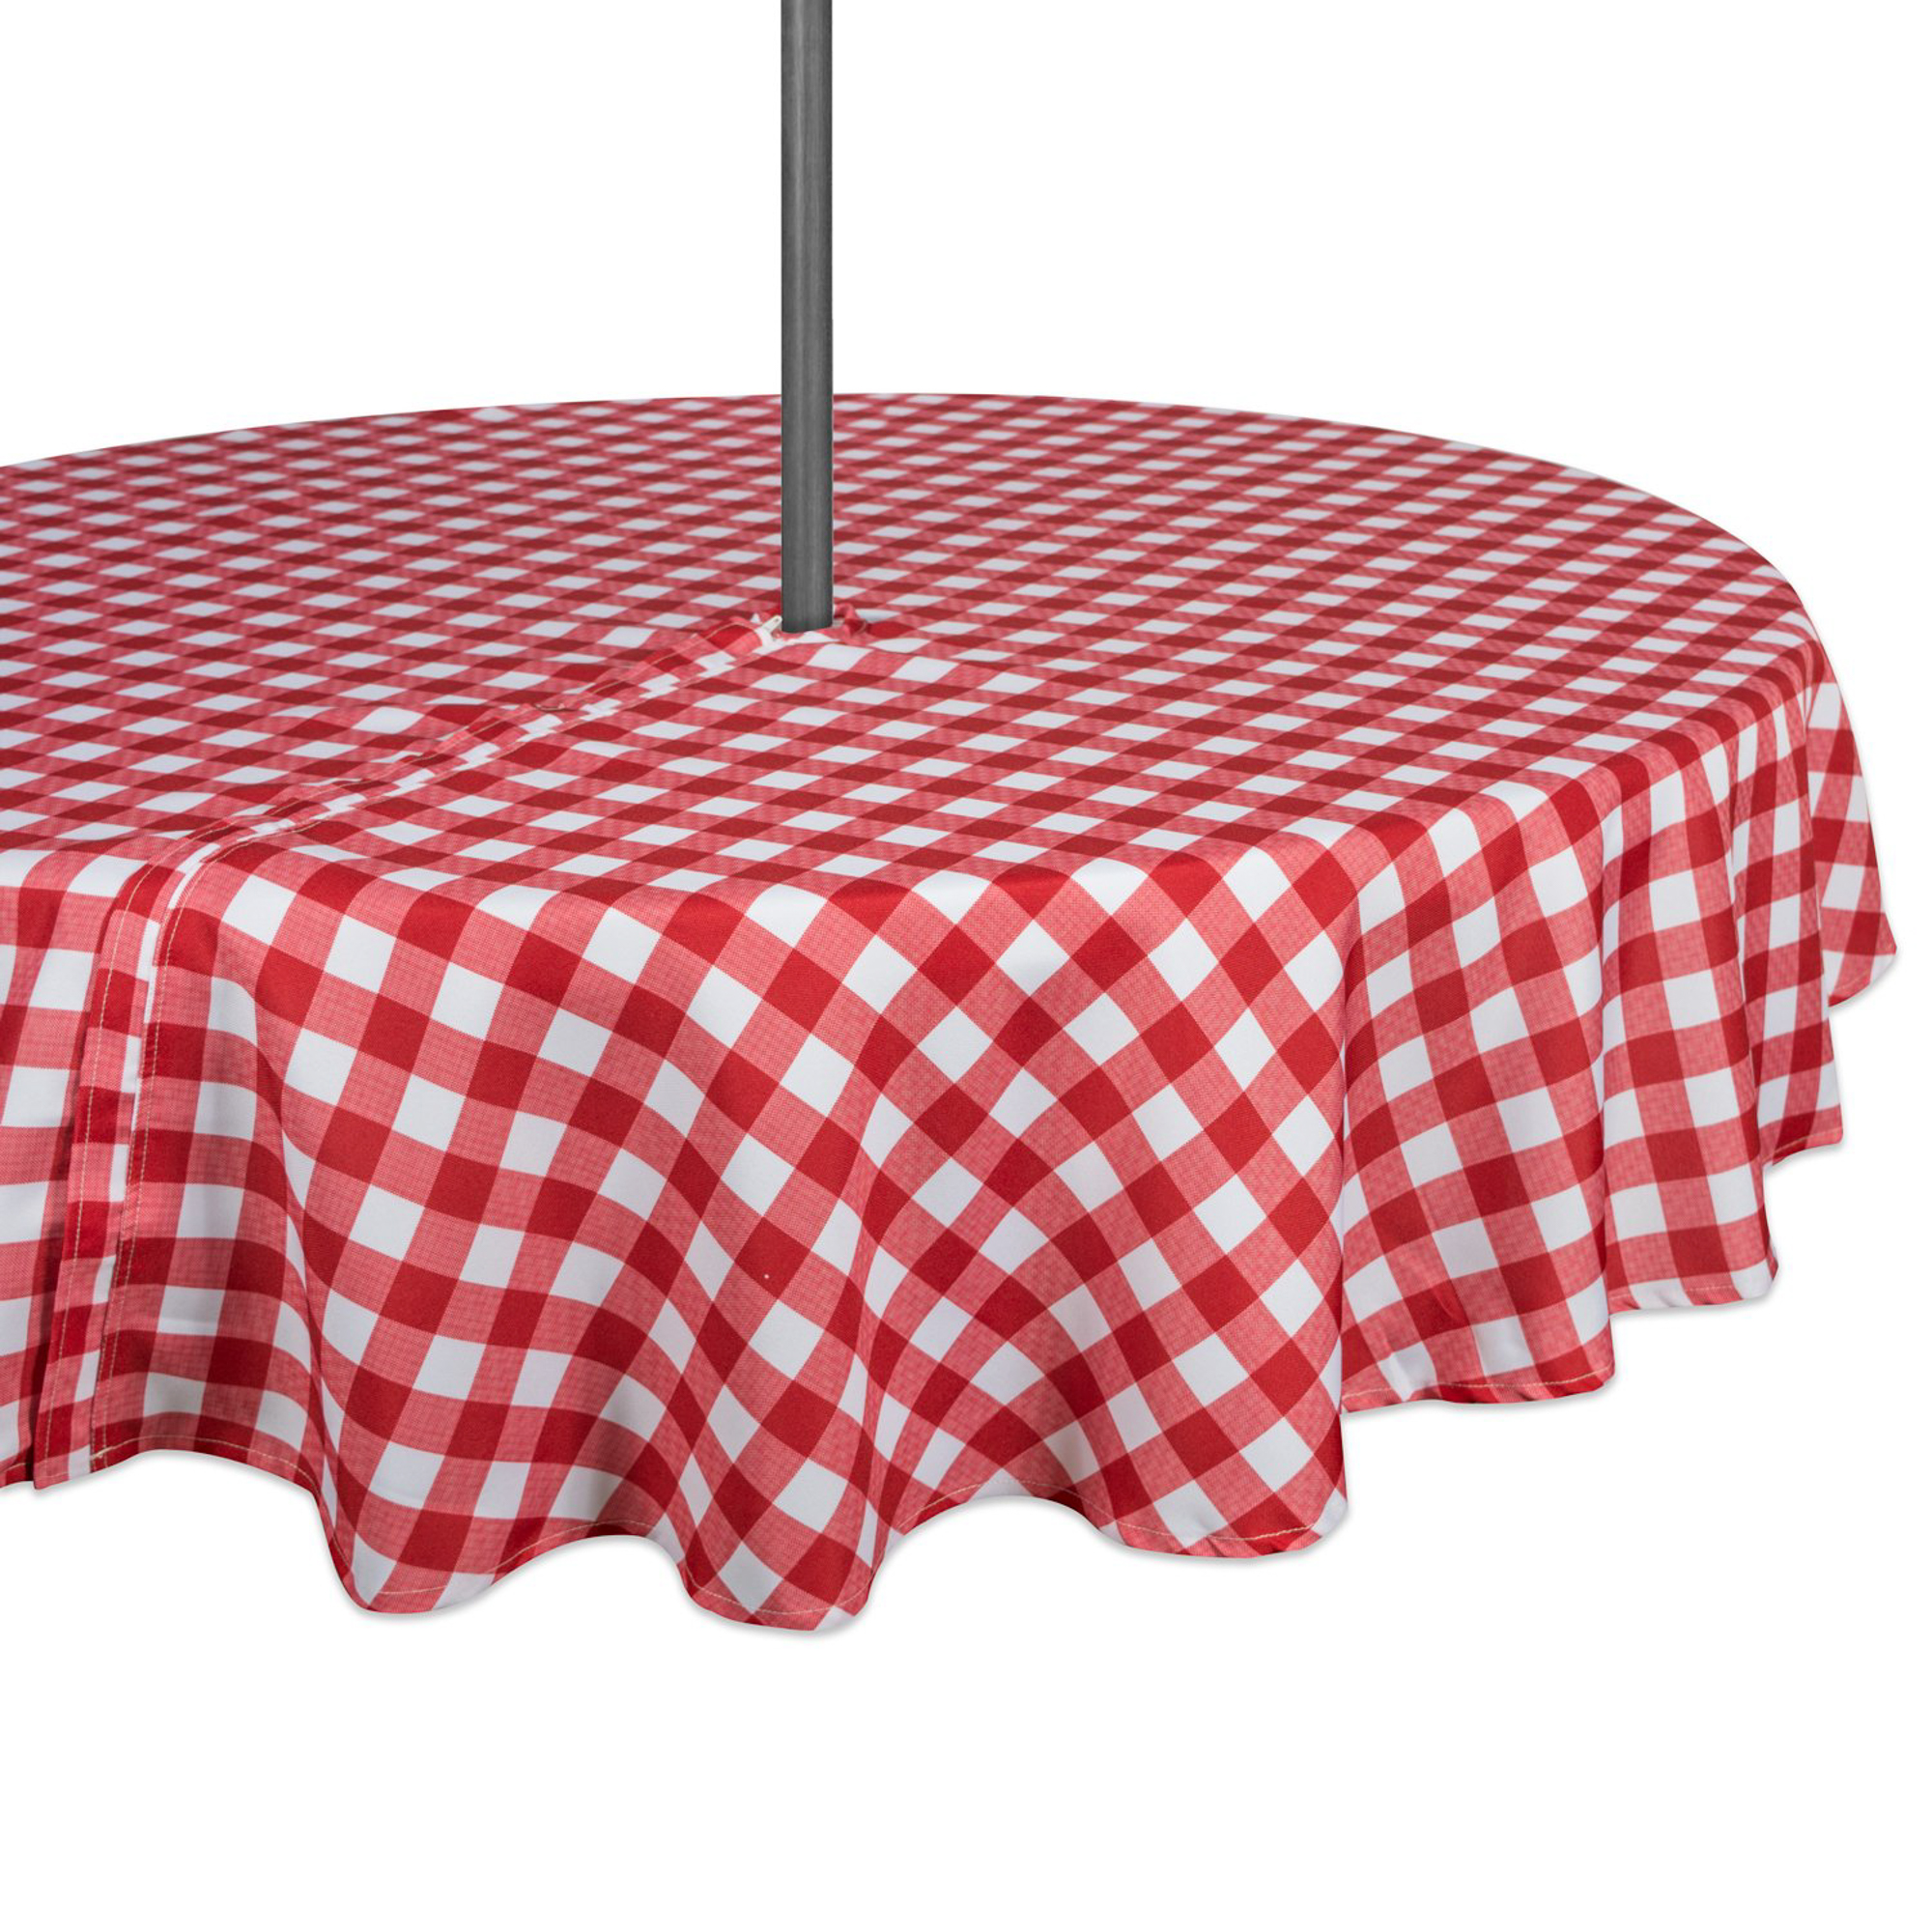 "Design Imports Casual Rectangle Checkers Umbrella Outdoor Tablecloth, 52"" Round, 100% Polyester, Multiple Sizes"